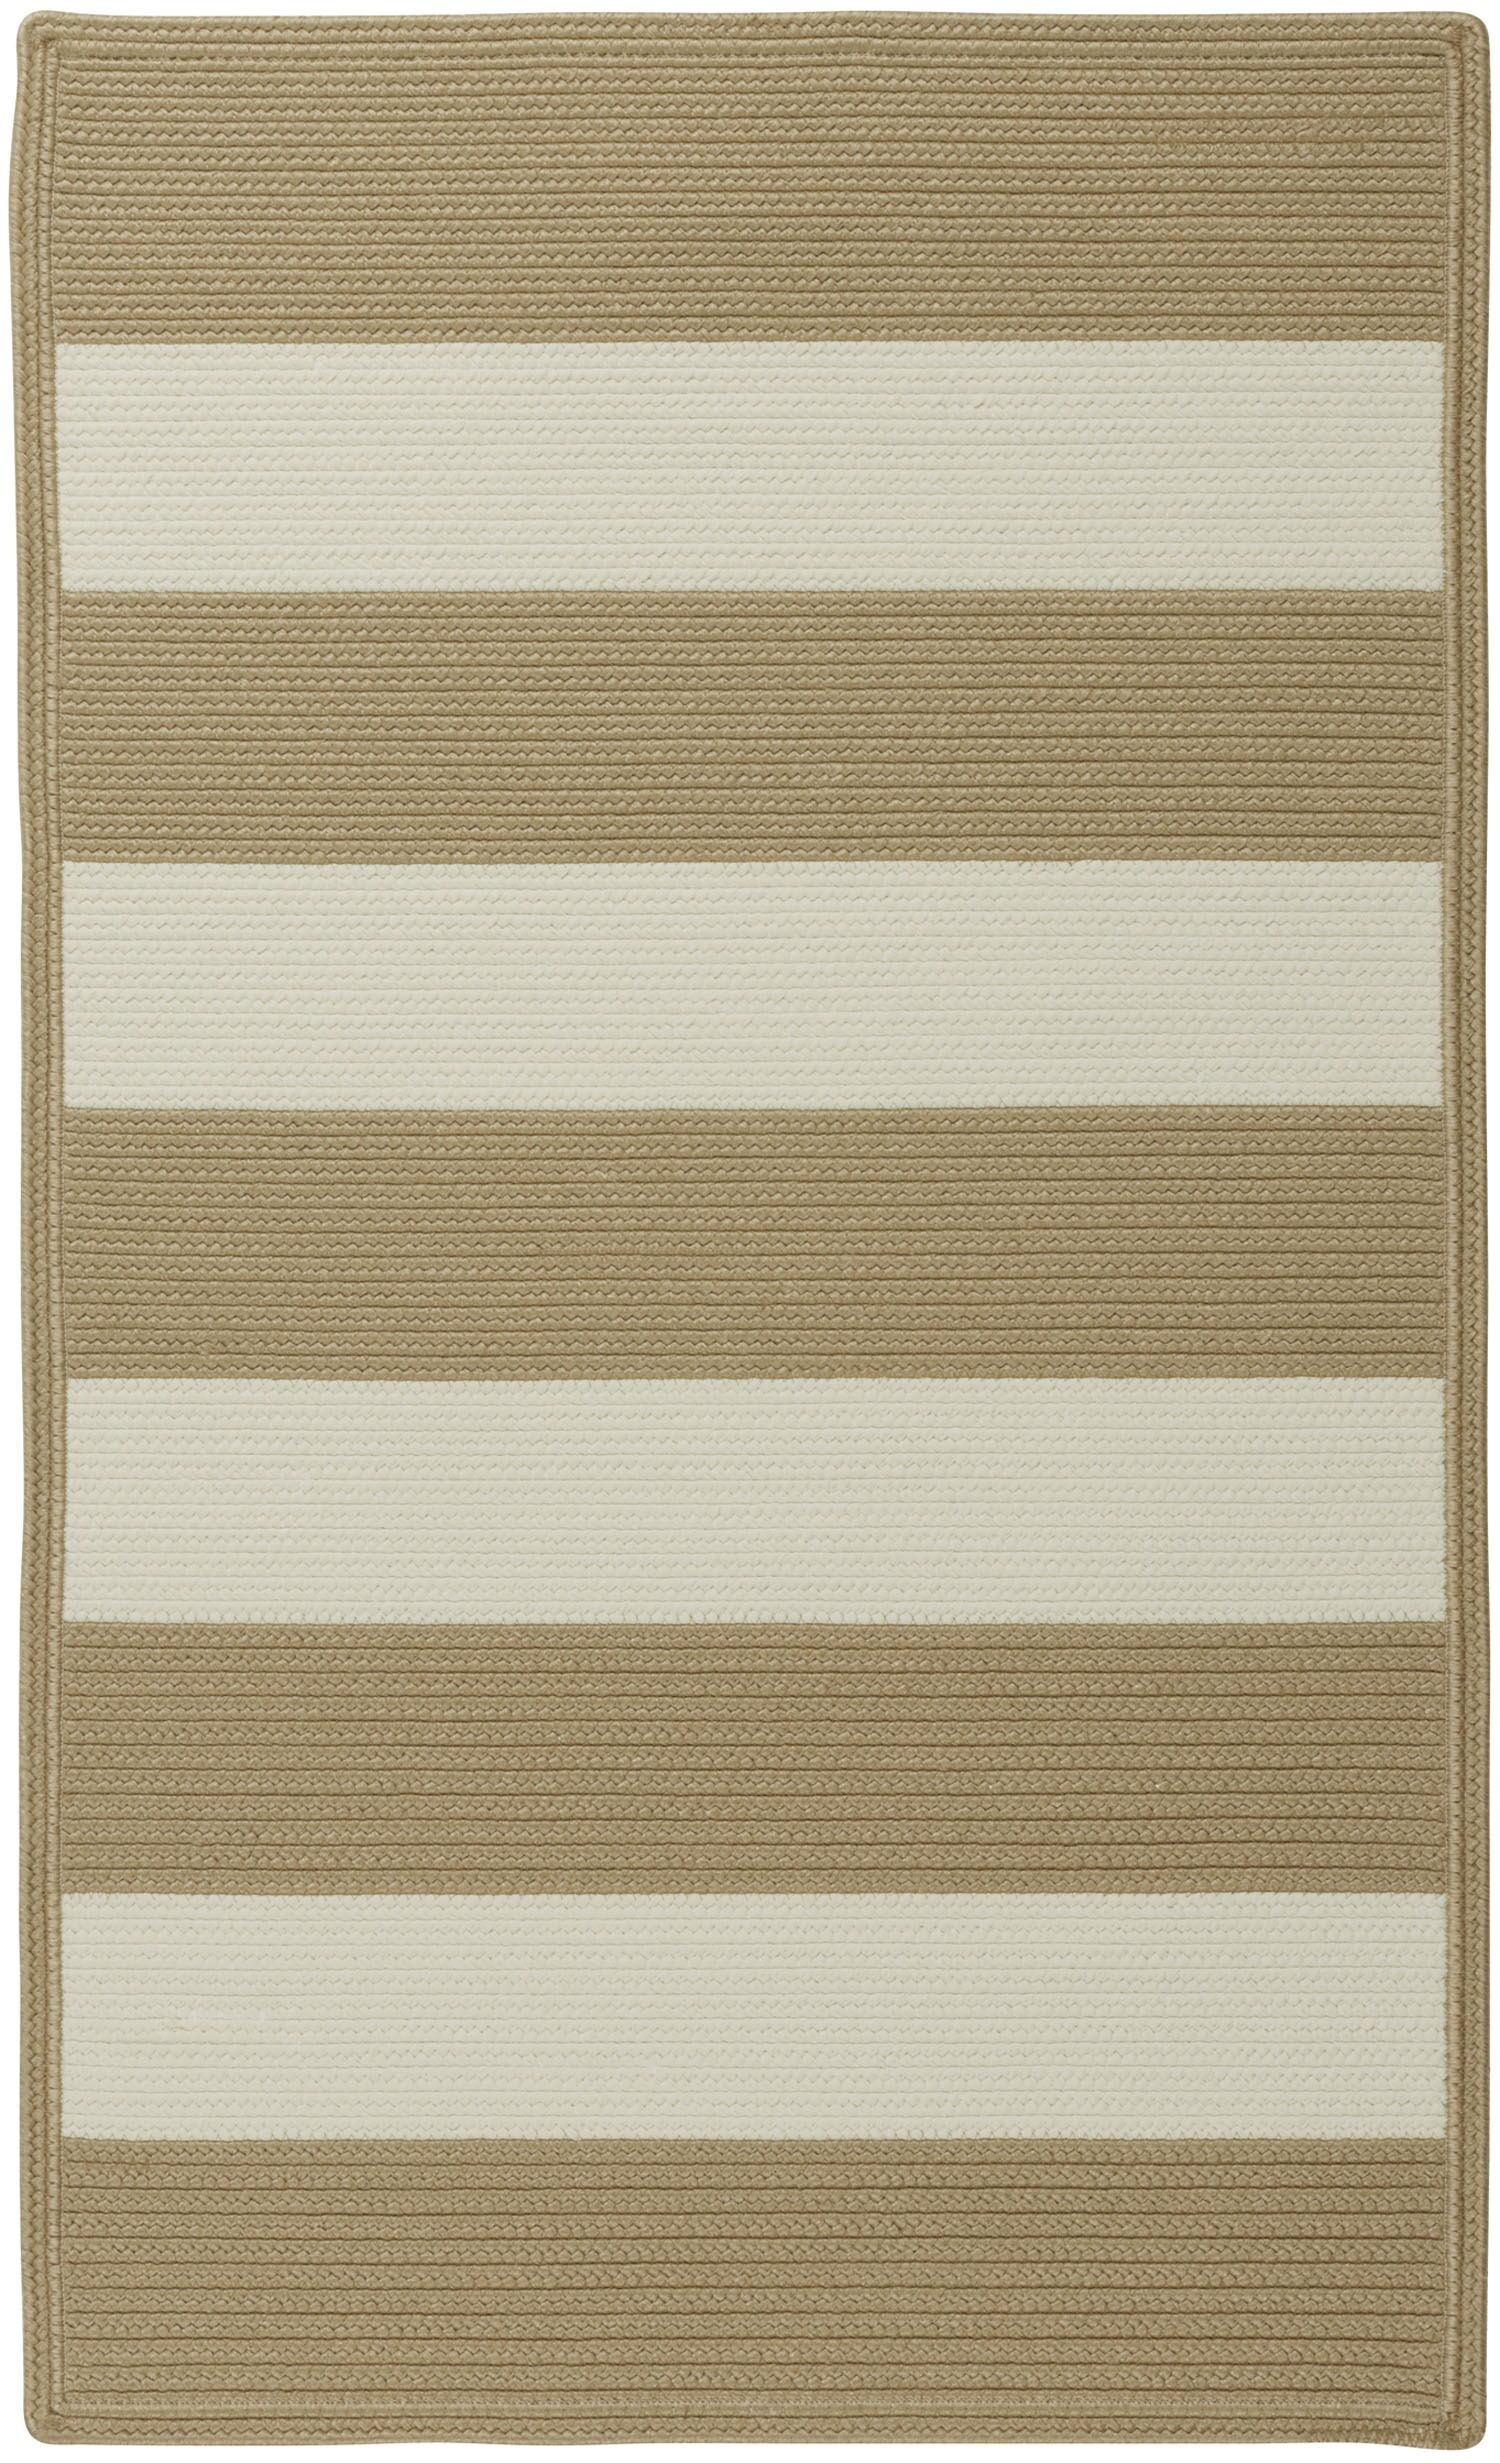 Mitscher Hand-Braided Cream Indoor/Outdoor Area Rug Rug Size: Concentric 5' x 8'